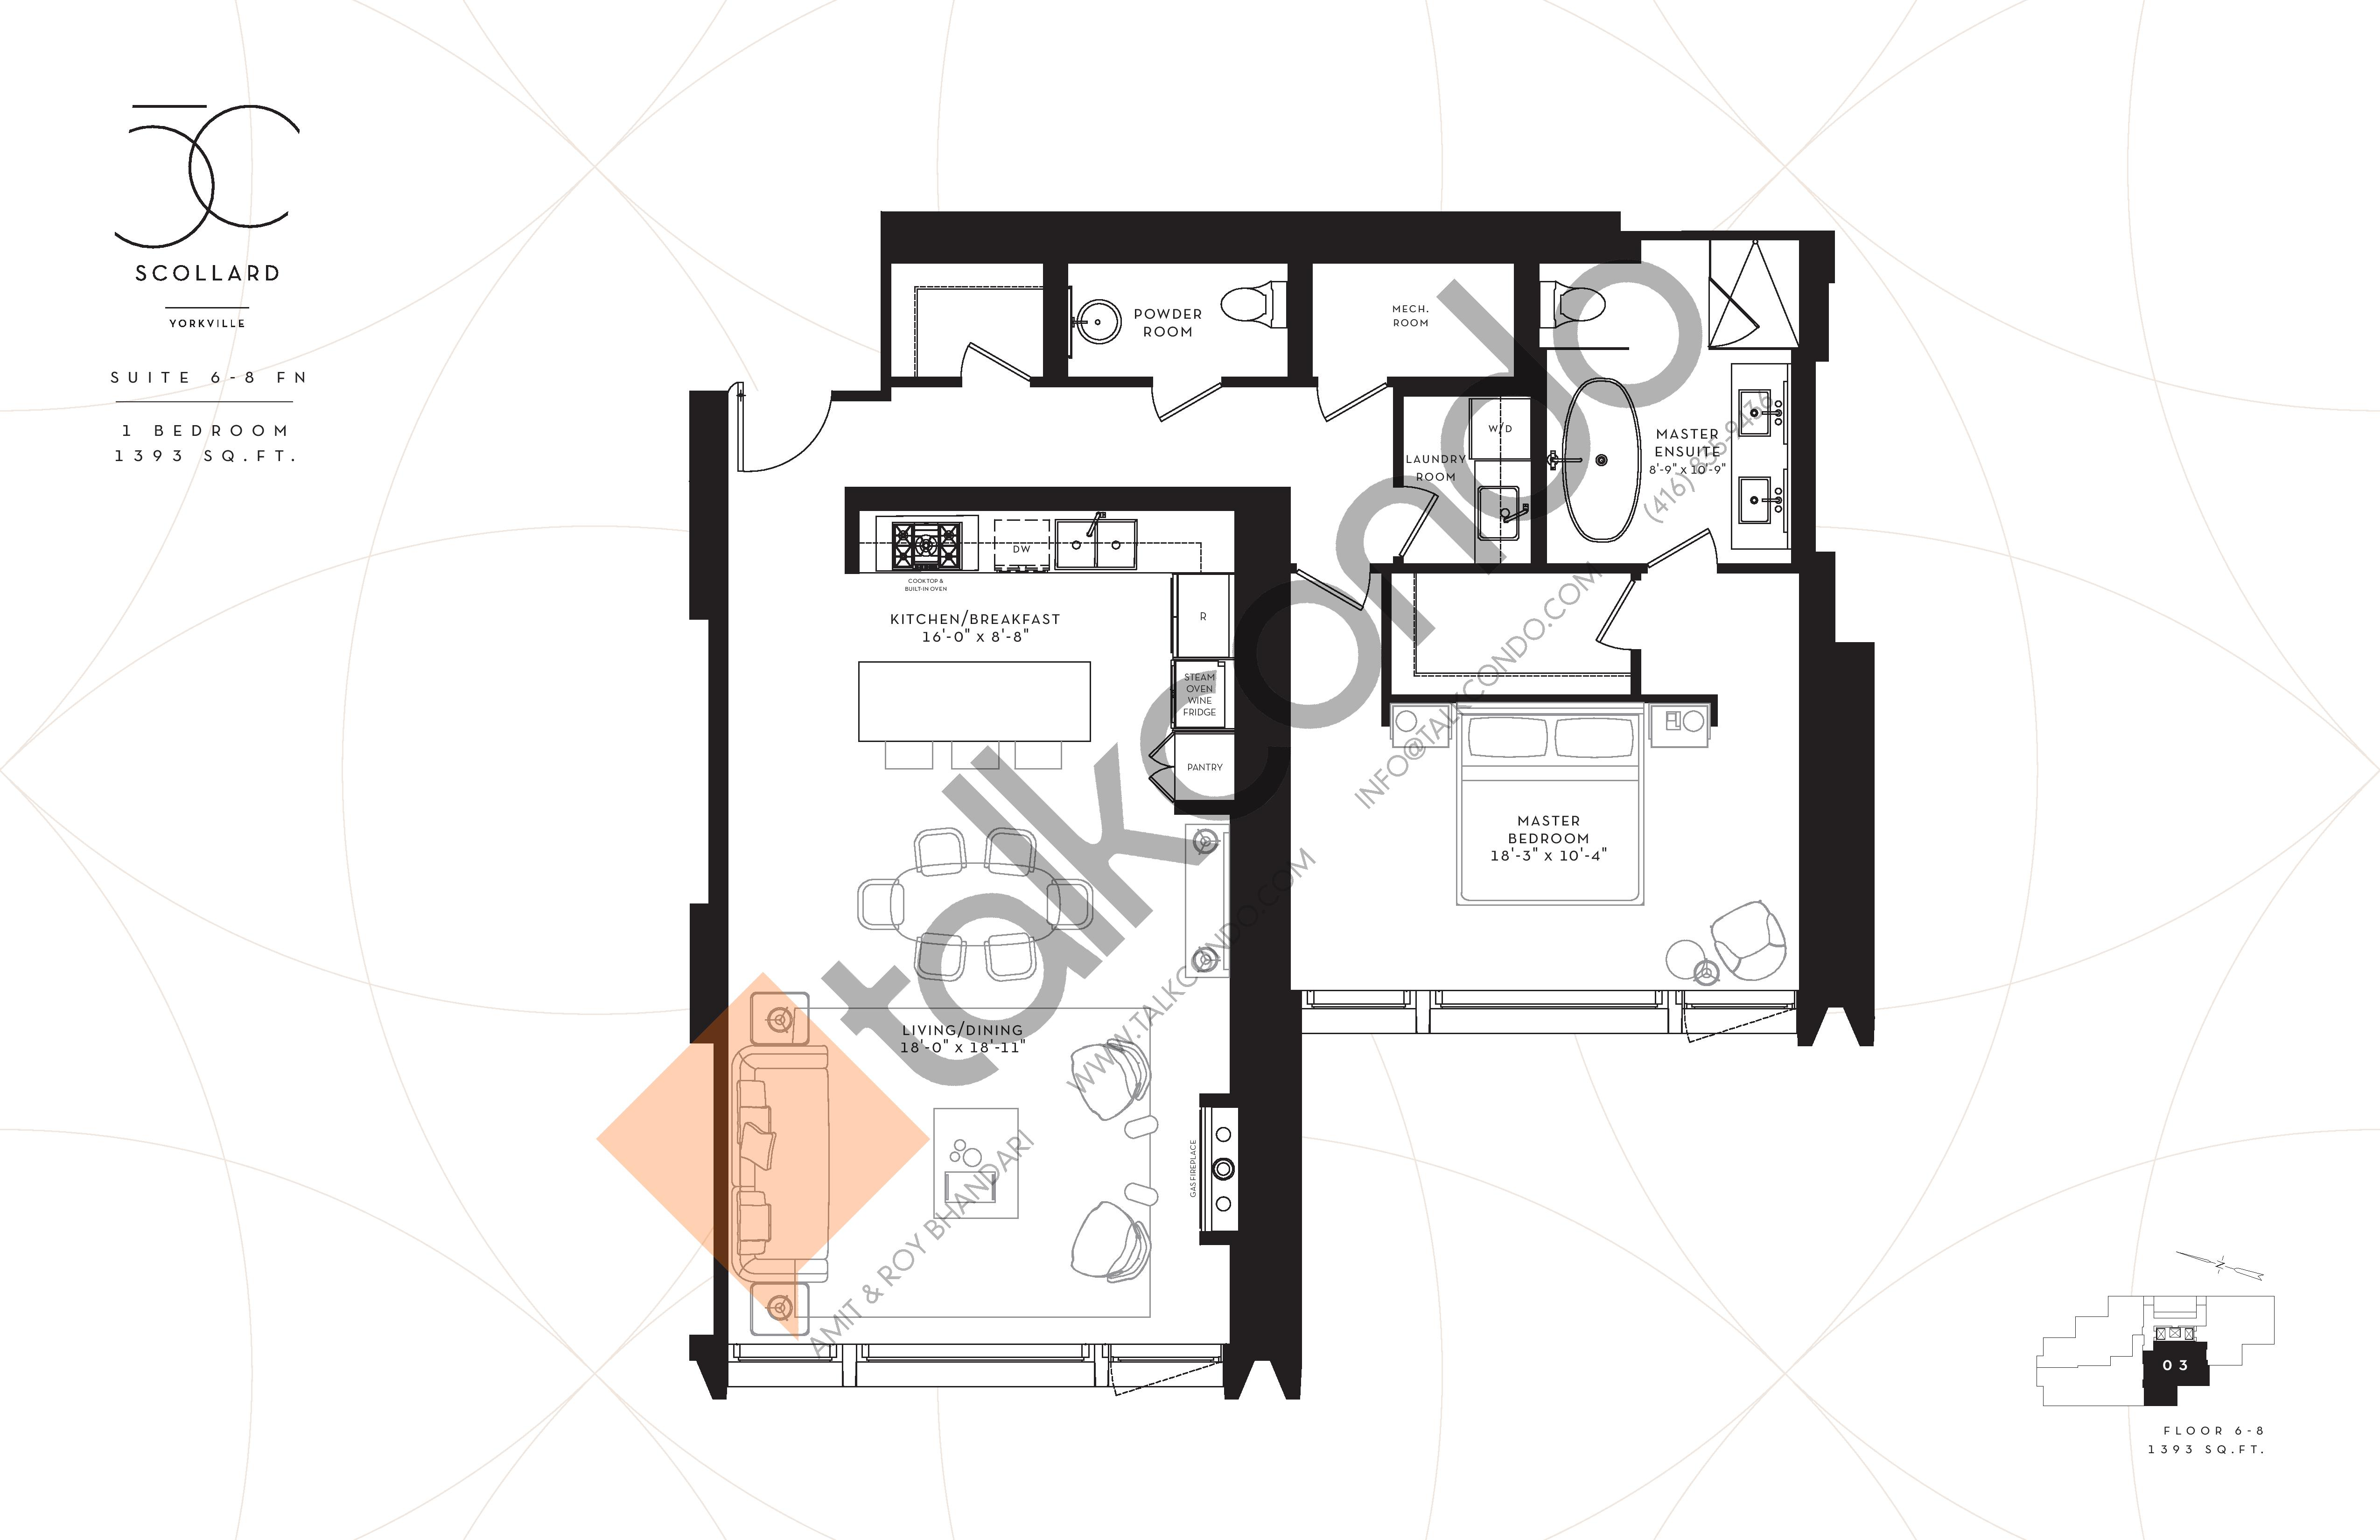 Suite 6-8 FN Floor Plan at Fifty Scollard Condos - 1393 sq.ft